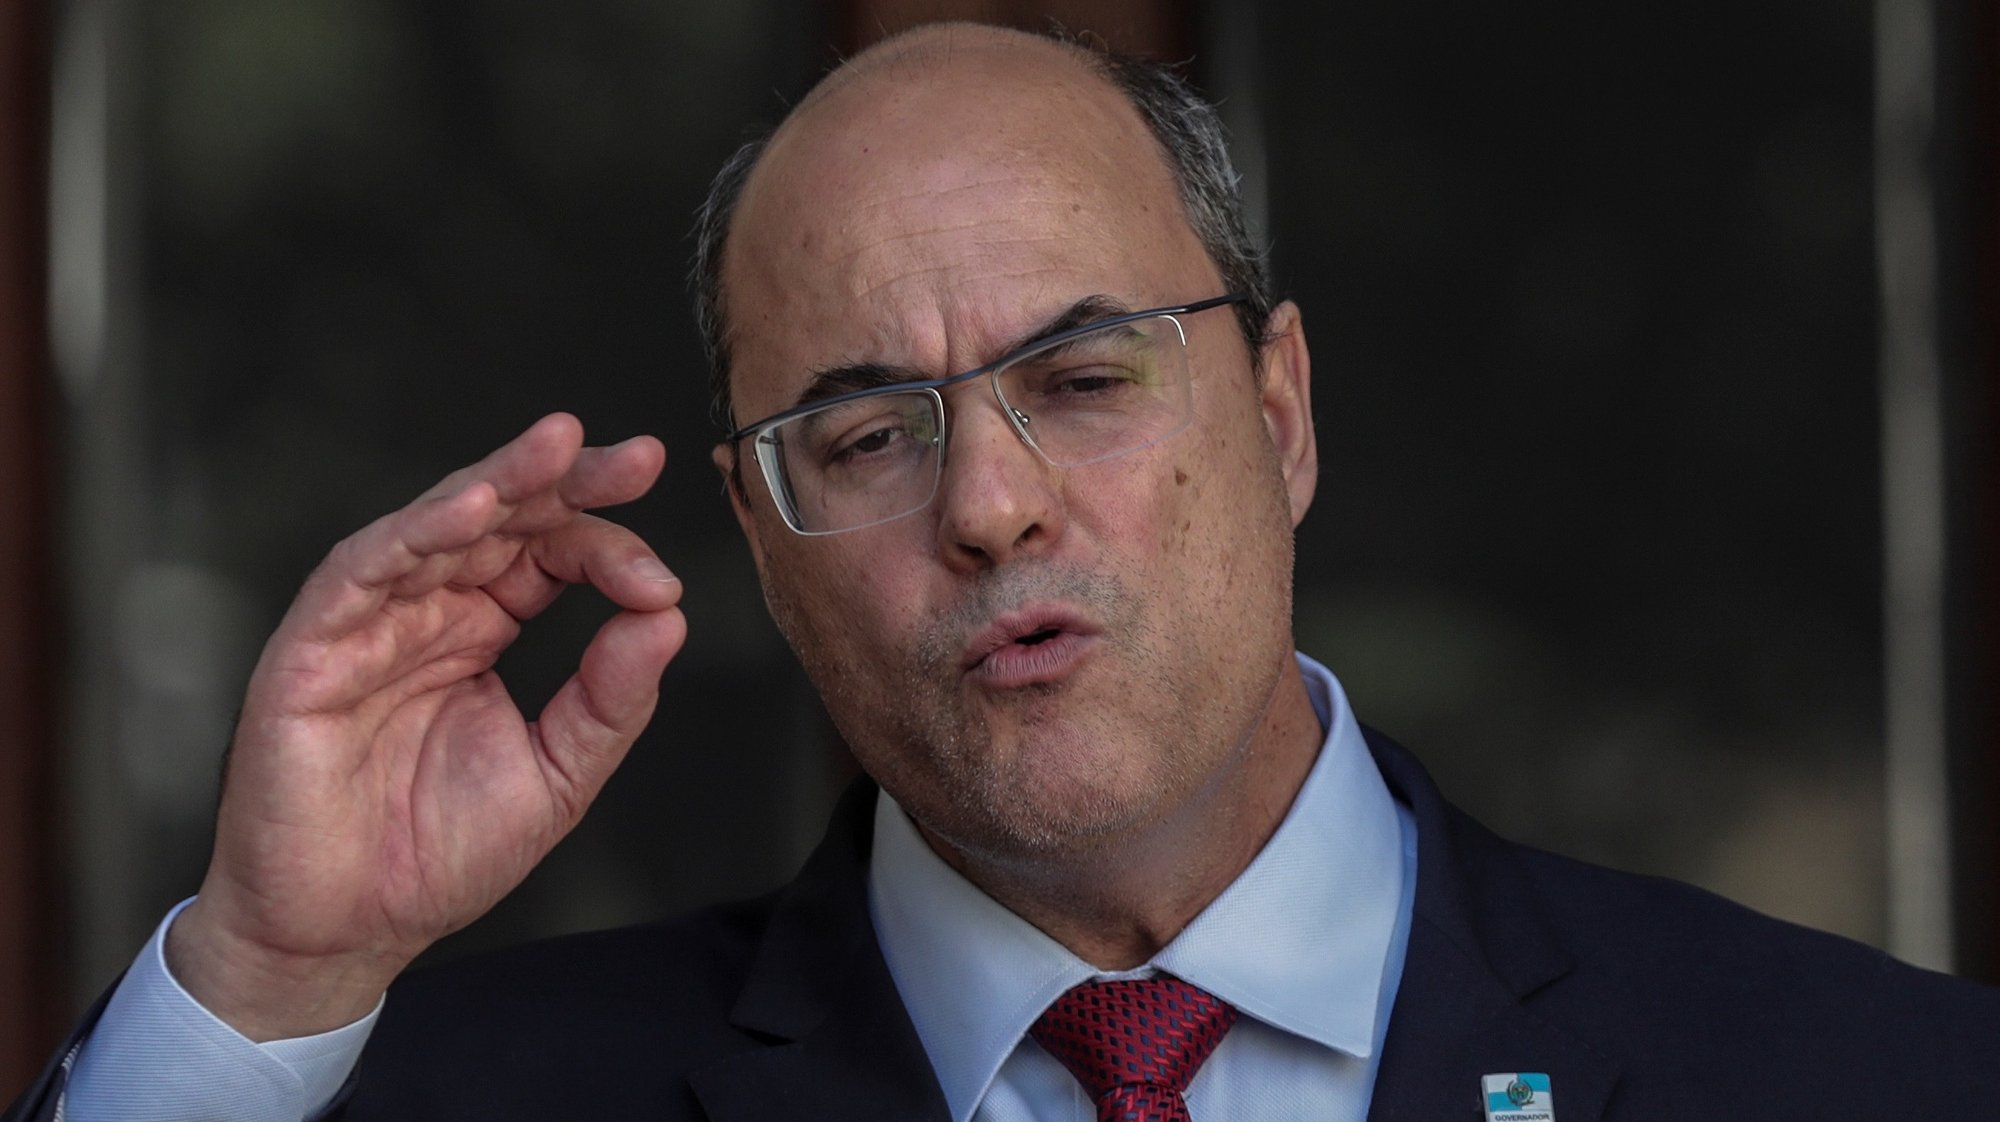 epa08632126 Wilson Witzel, temporarily separated by the Justice as governor of Rio de Janeiro due to his relationship to a corruption plot, speaks during a press conference in Rio de Janeiro, Brazil, 28 August 2020. Witzel considered himself 'a victim' of political interests of the high institutions and accused the Attorney General's Office of 'persecuting governors.' The Superior Court of Justice (STJ) of Brazil ordered on 28 August to dismiss for 180 days the conservative Witzel - a former ally of President Jair Bolsonaro - for irregularities in the management of public funds in the management to combat the coronavirus pandemic.  EPA/ANTONIO LACERDA